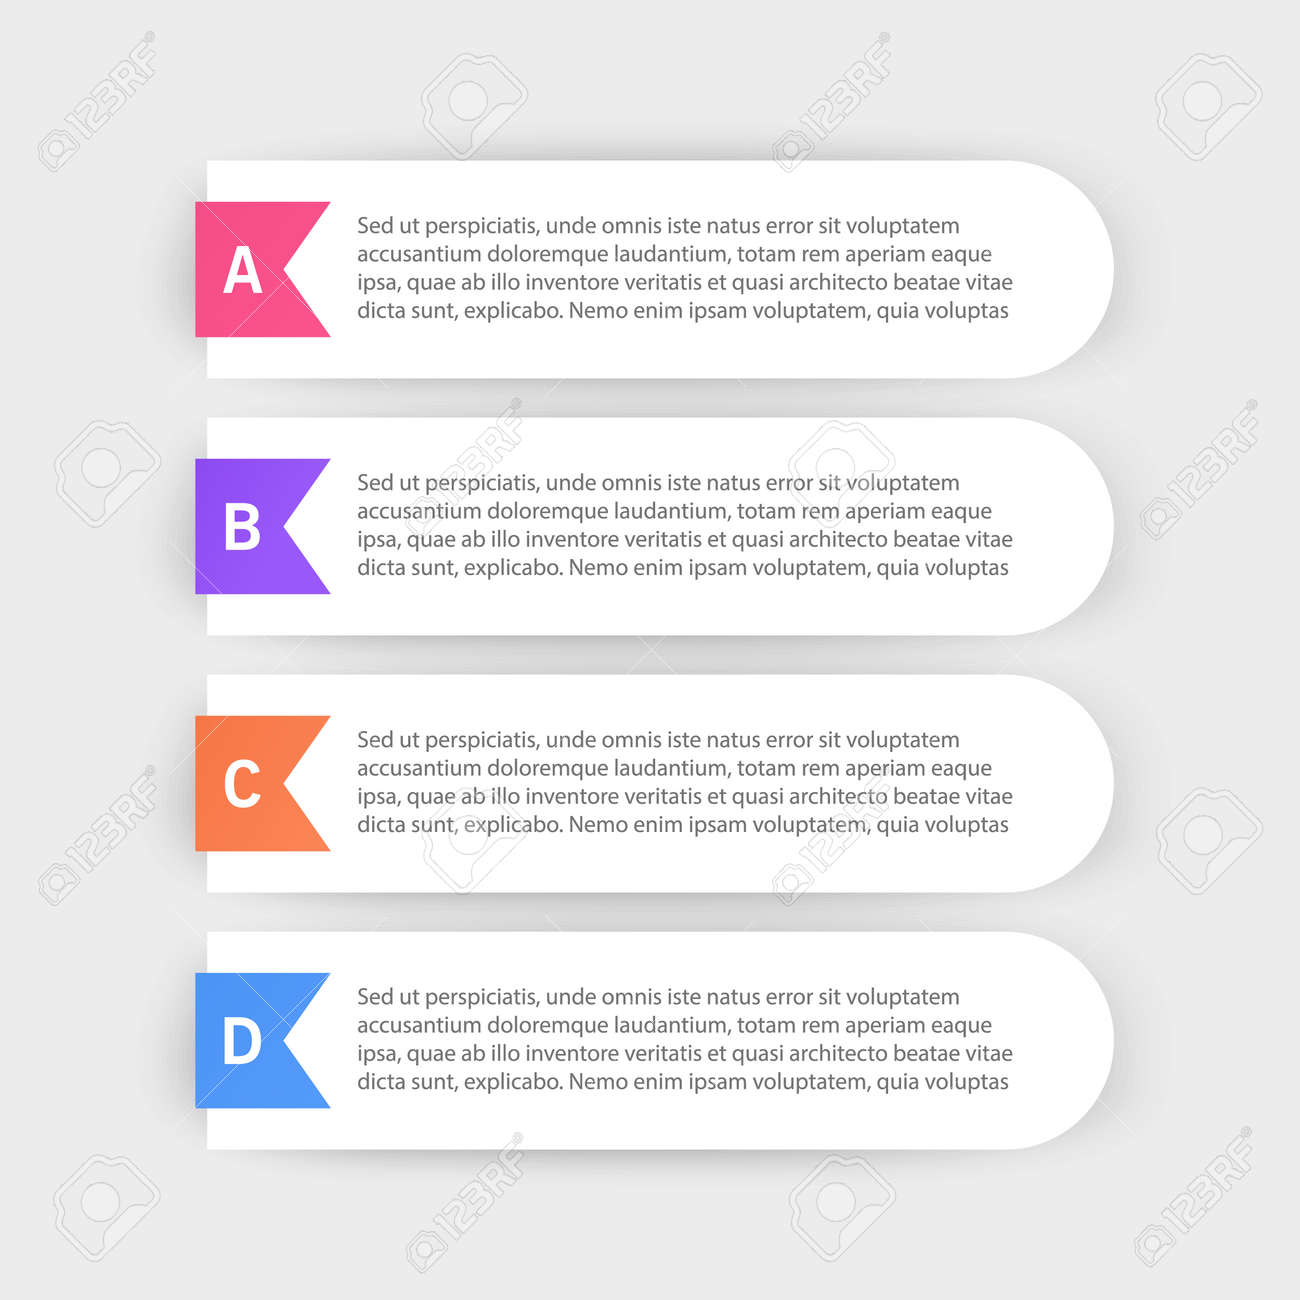 Infographic design template with icons and 4 options or steps. Can be used for process diagram, presentations, workflow layout or banner, Vector illustrations - 171657237